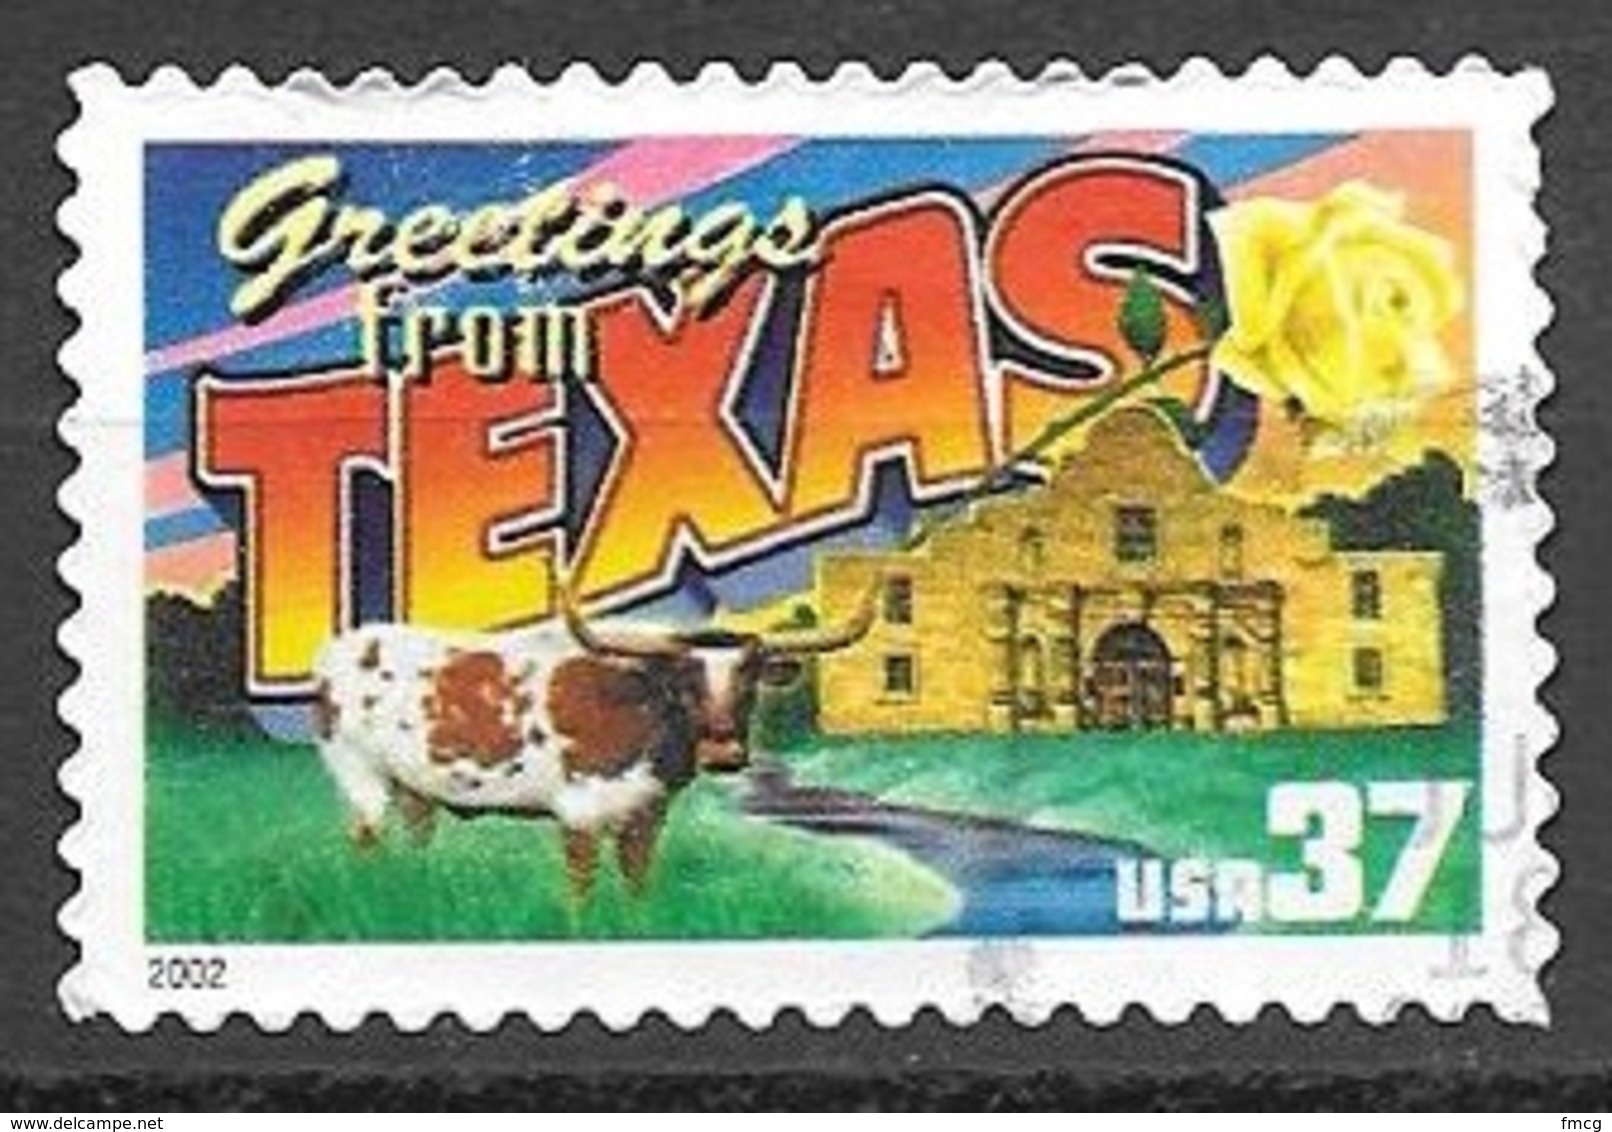 2002 37 Cents State Greetings, Texas, Used - United States